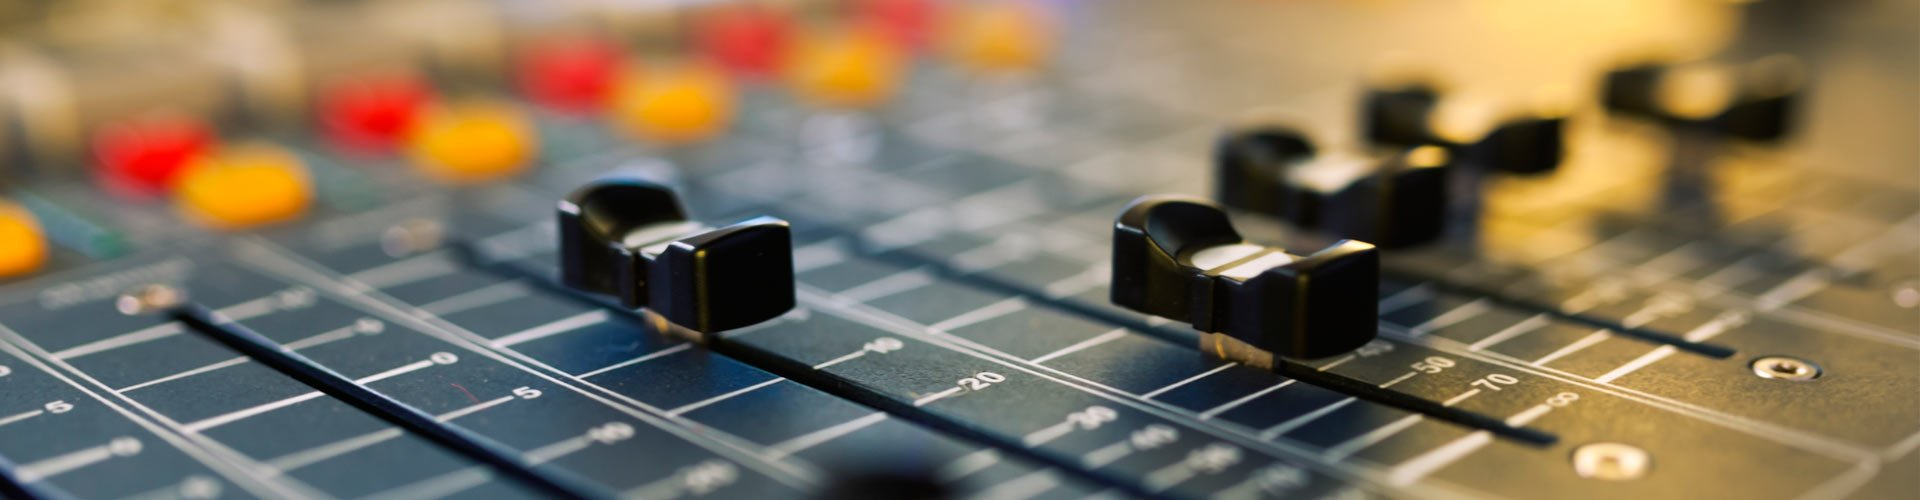 douglas communications systems mixing console